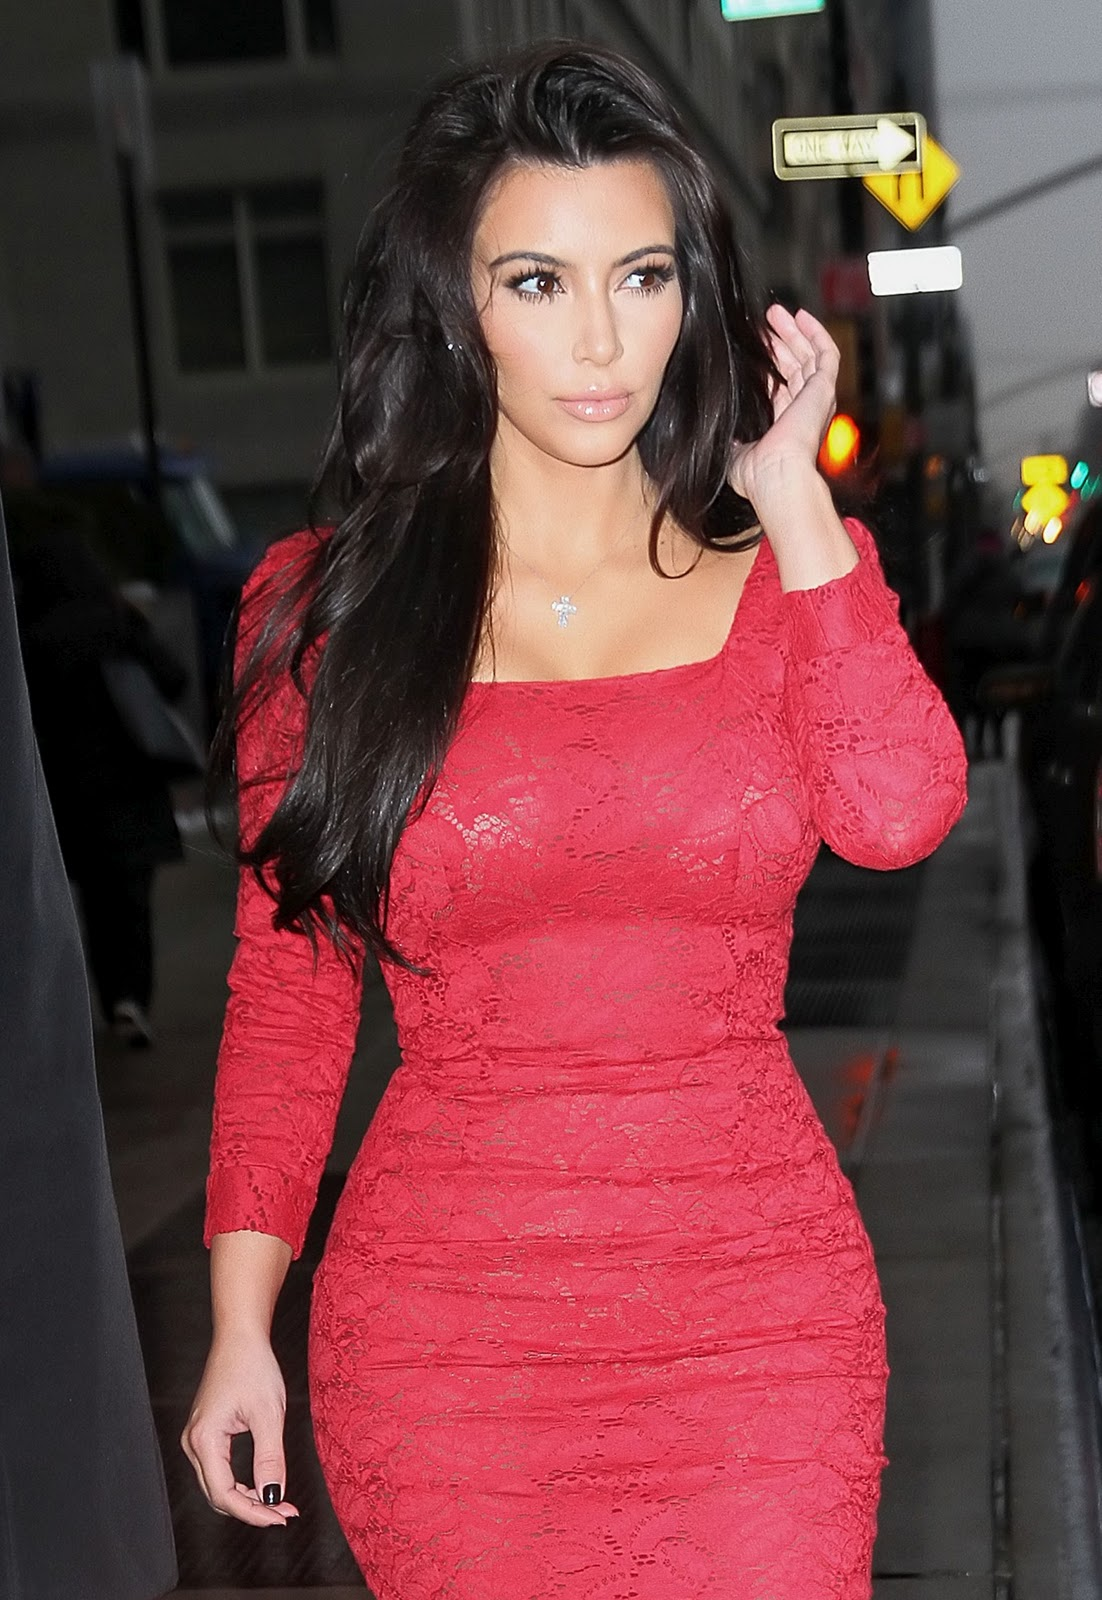 http://2.bp.blogspot.com/-RB4AyqXgE_A/UOG2rUvBSqI/AAAAAAAAErg/_1Vvv1ad2Yo/s1600/kim-kardashian-dress-fashion-show-2012-walk-photoshoot-sexy-style-kim-kardashian-hot-pics-images-gallery-2012-wallpapers-1.jpg